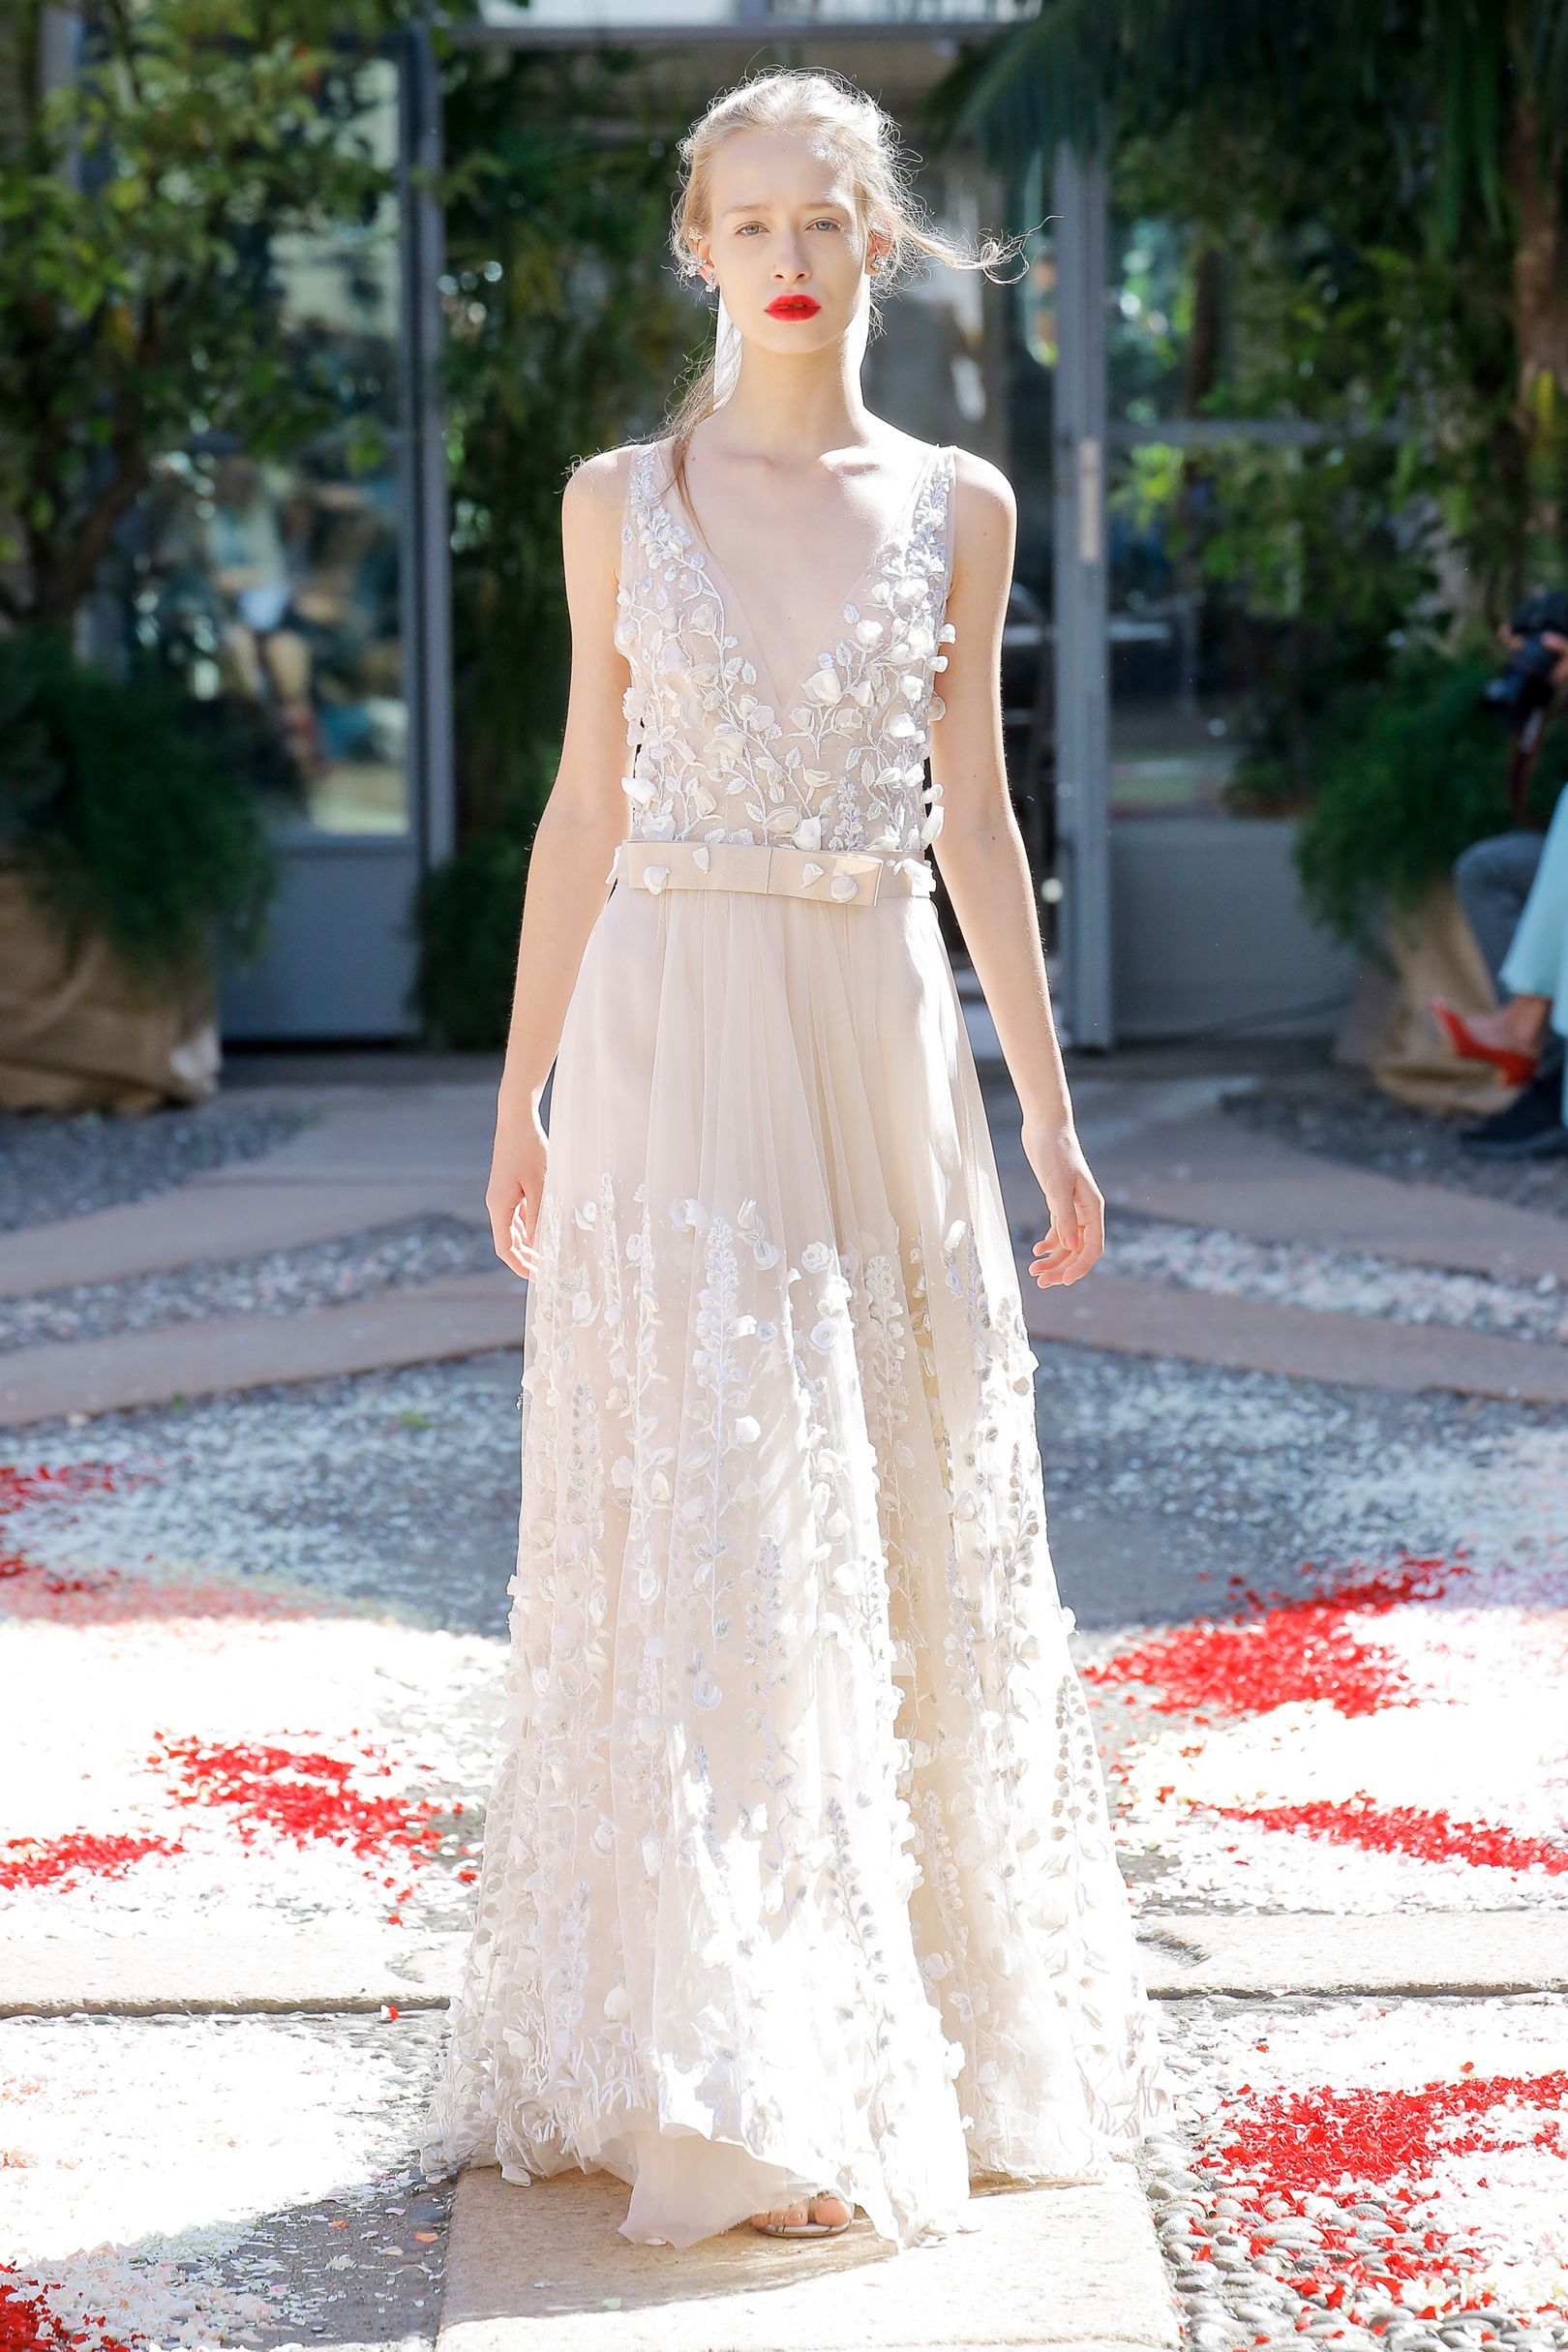 The most awesome alternative wedding dresses for the non-traditional bride The most awesome alternative wedding dresses for the non-traditional bride new pictures